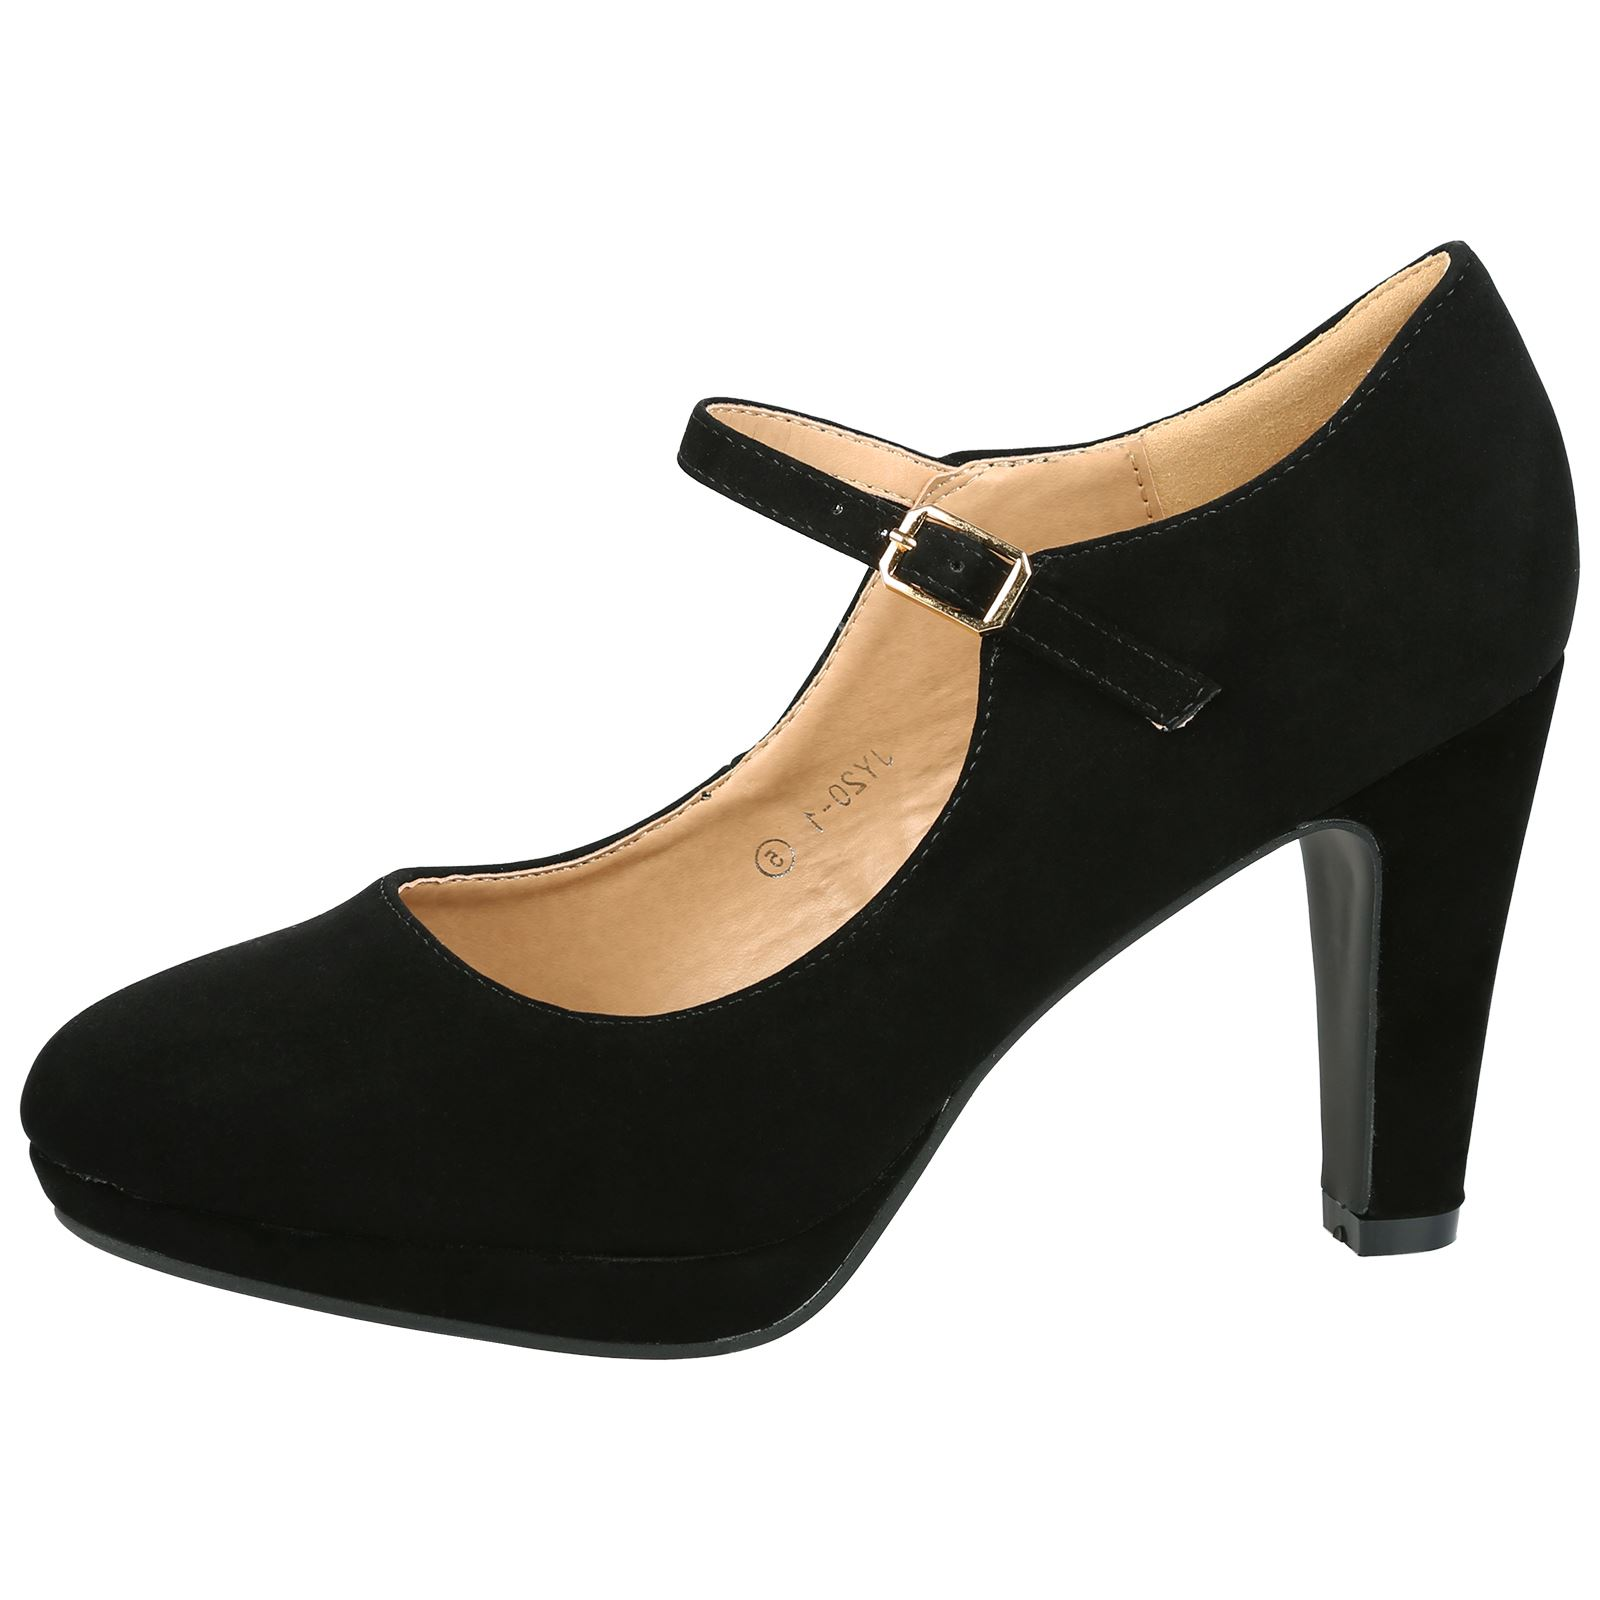 WOMENS SHOES LADIES MARY JANES COURT OFFICE WORK BUCKLE STRAP HIGH HEELS SIZE